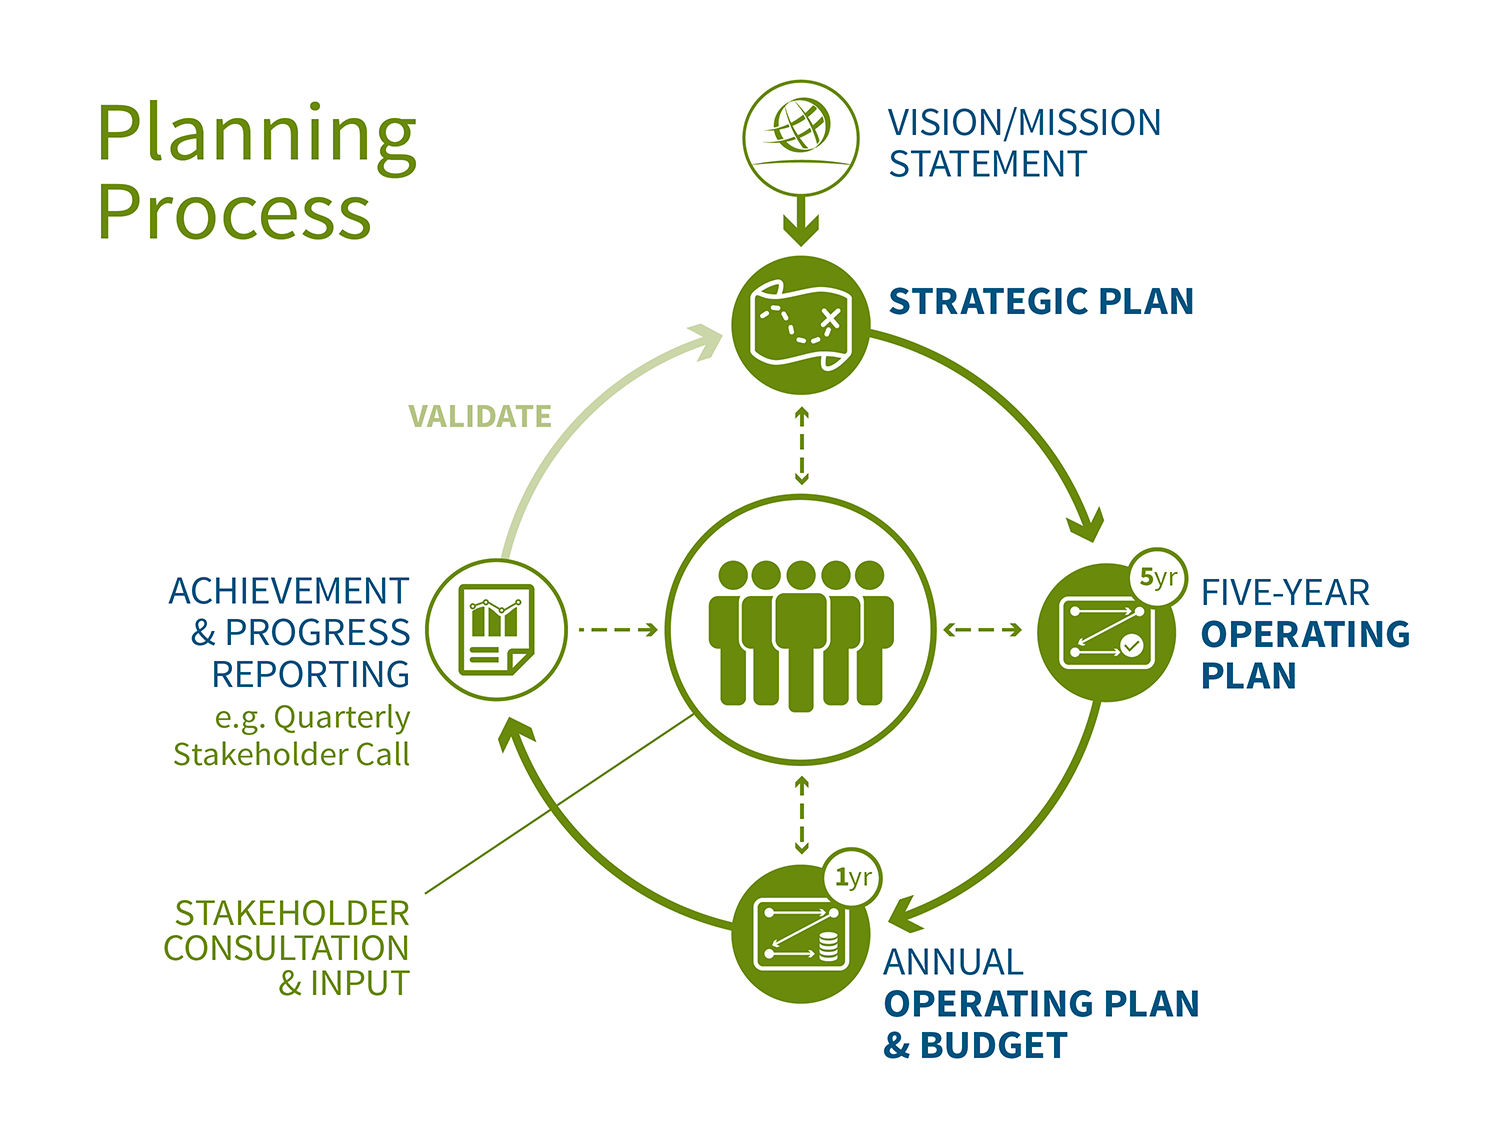 Planning Process Graphic